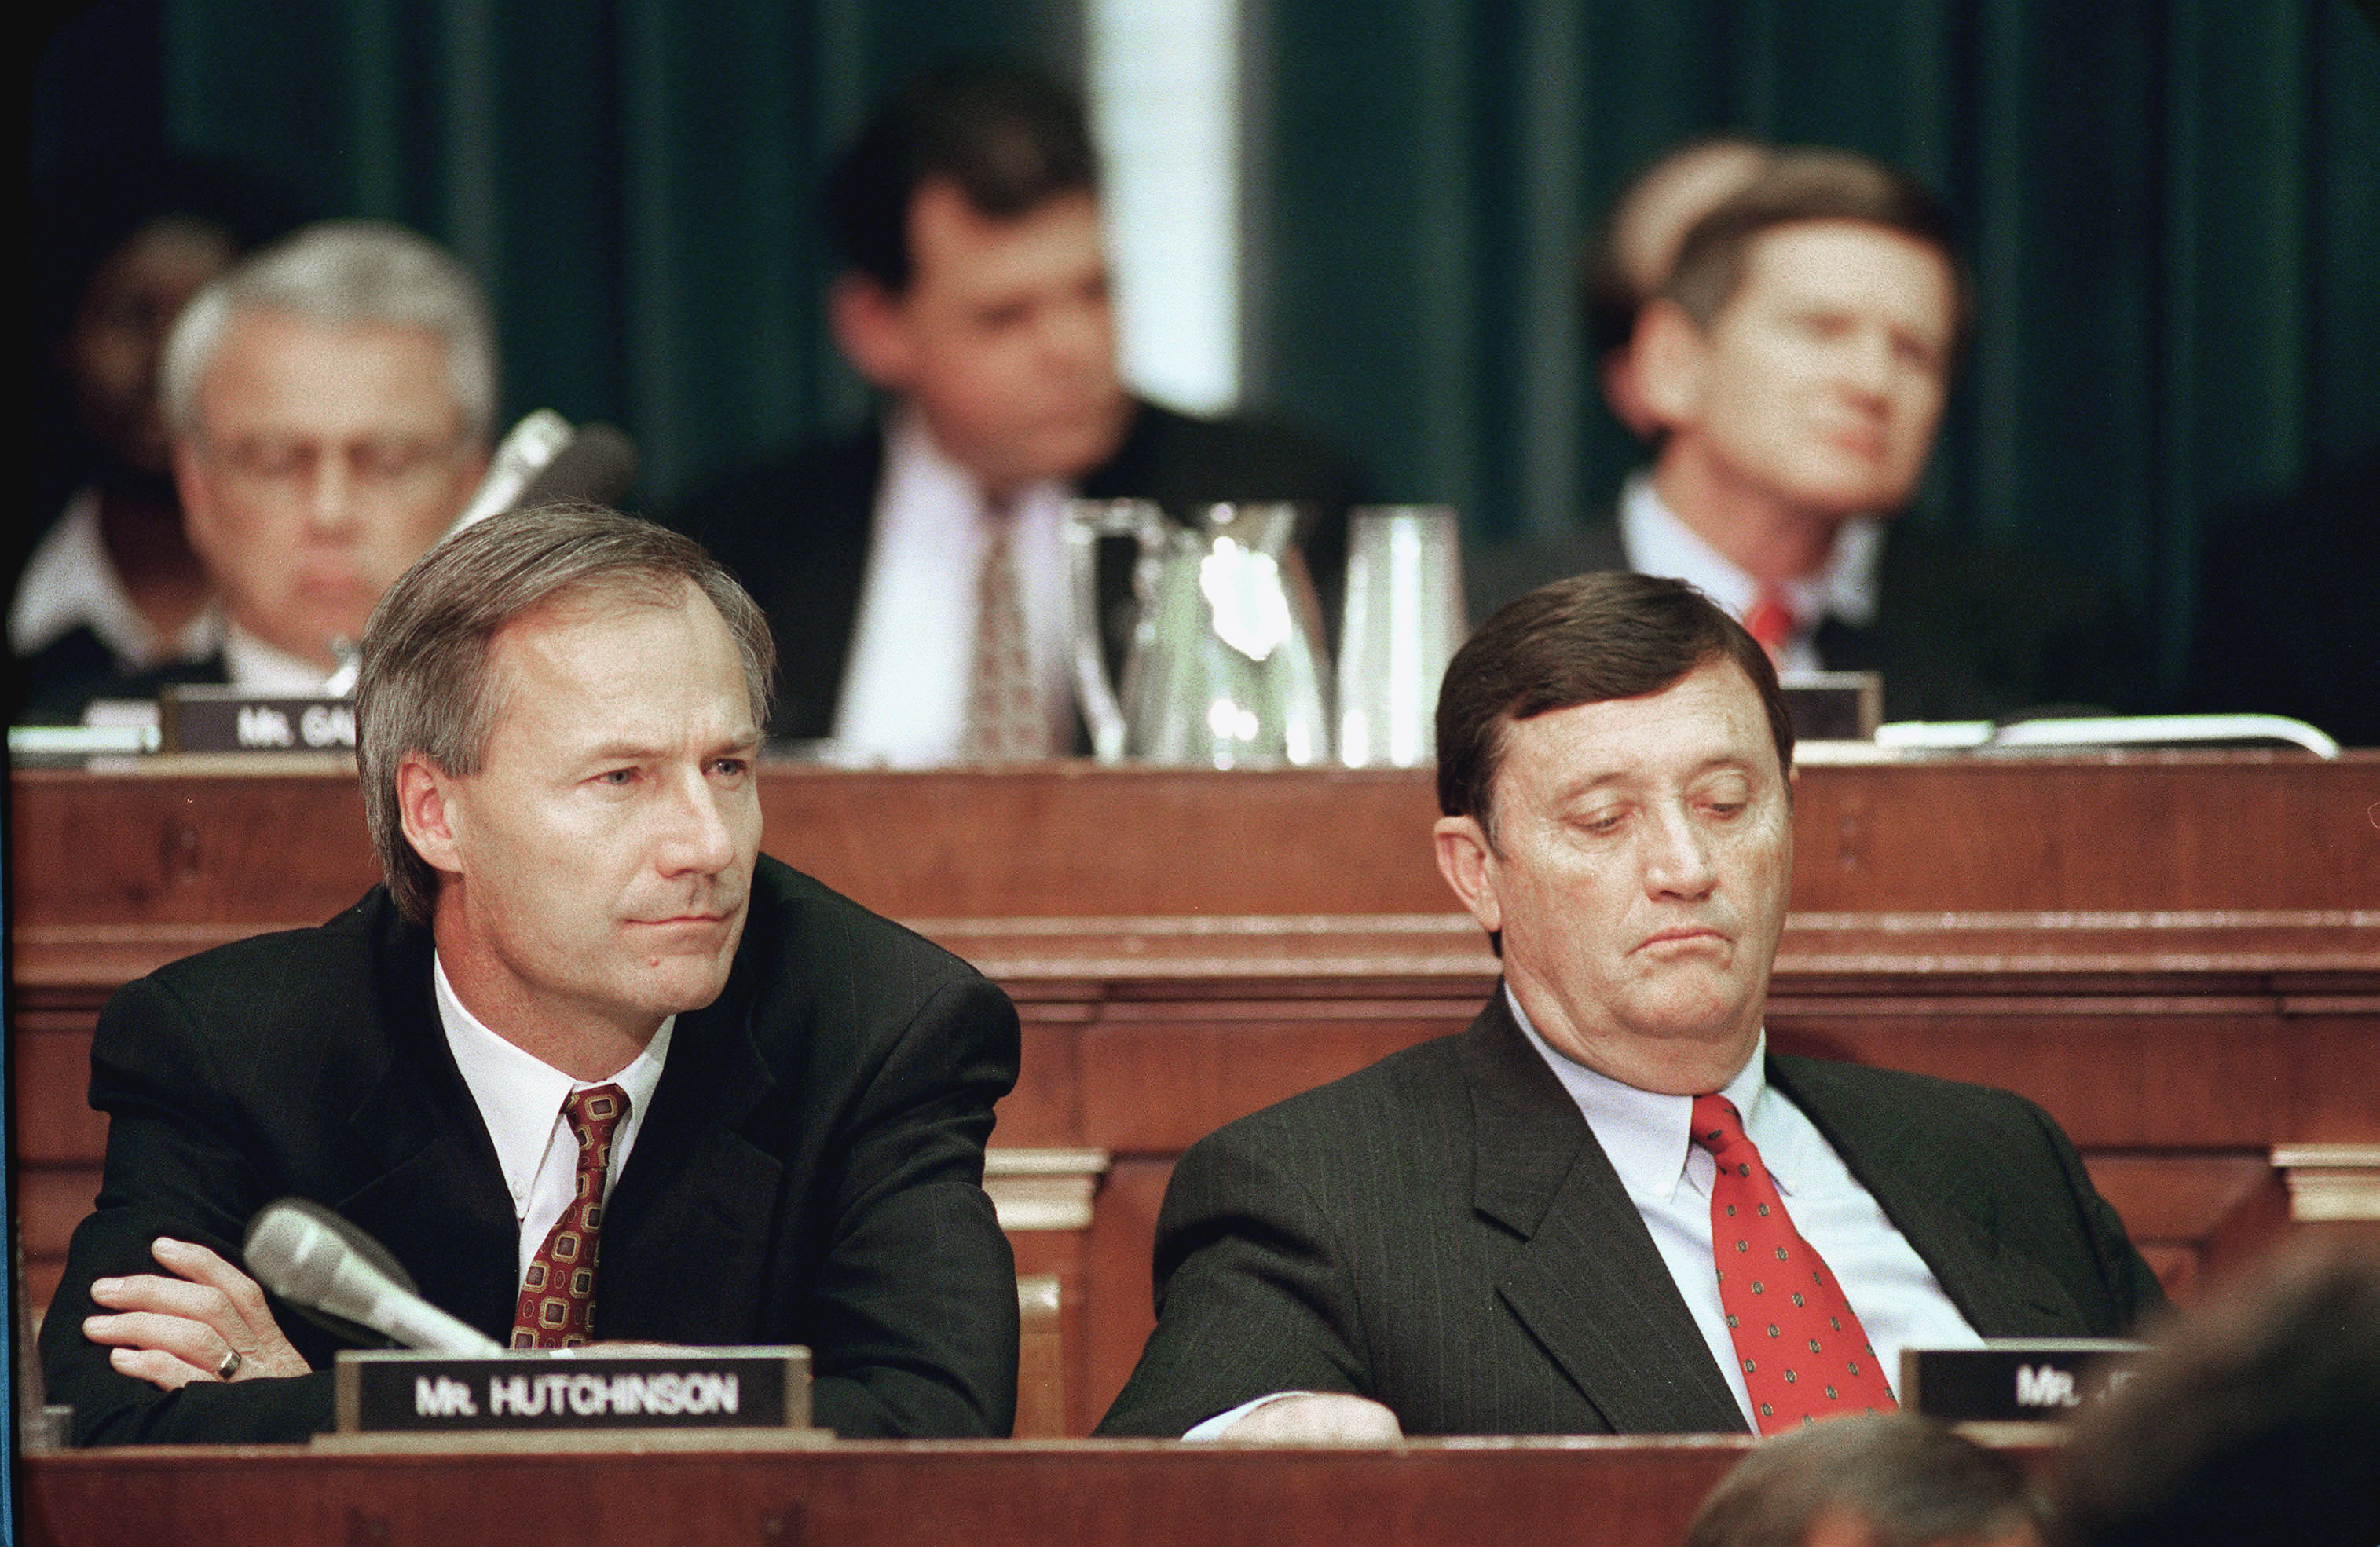 Asa Hutchinson,R-Ark., and Bill Jenkins,R-Tenn.,listen to Independent Counsel Kenneth Starr opening statement before the House Judiciary Committee regarding articles of impeachment against President Bill Clinton.  ( Scott J. Ferrell--Congressional Quarterly/Getty Images)